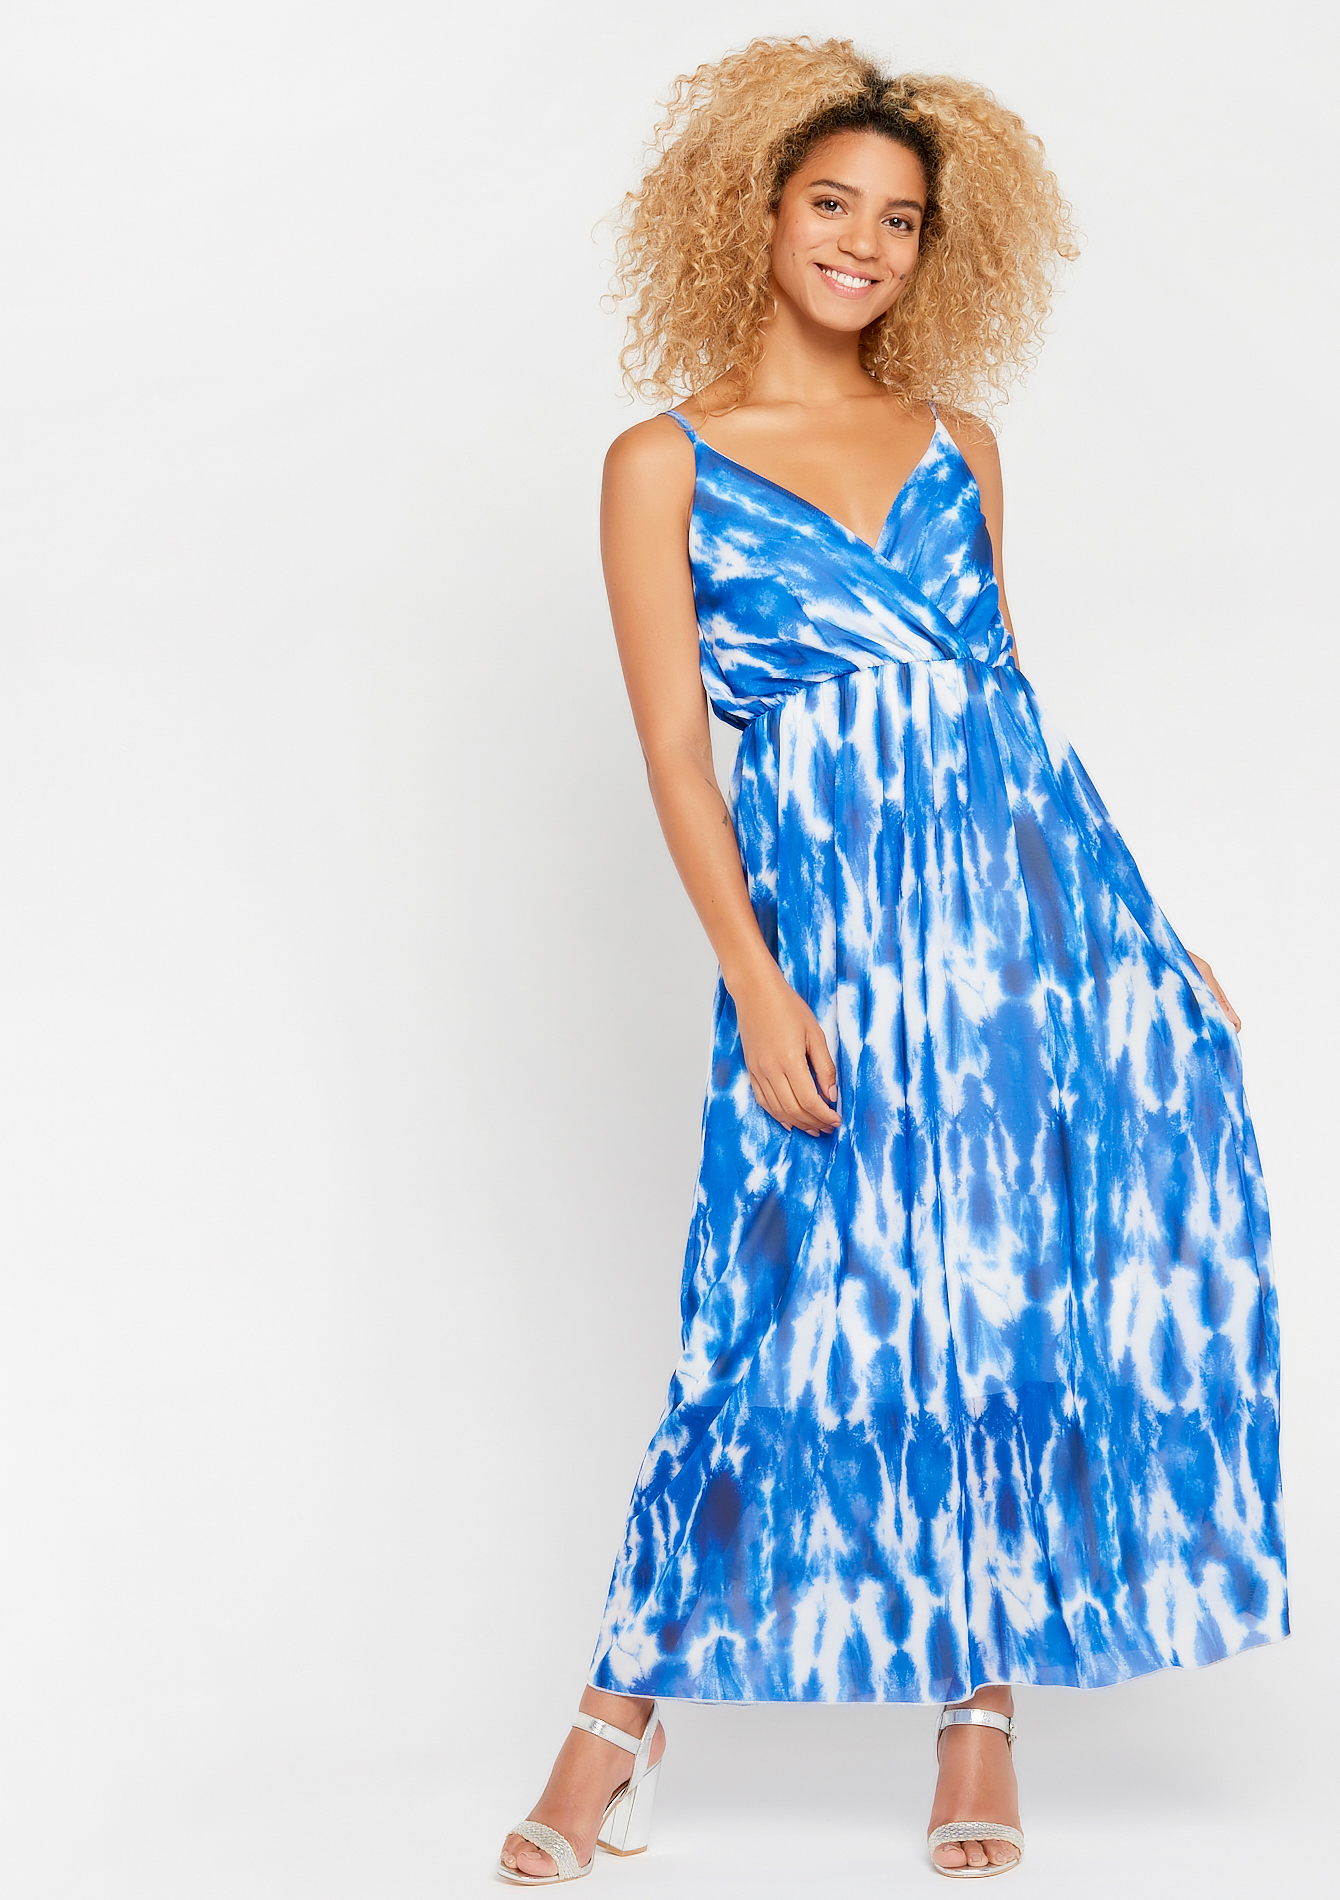 Robe tie dye,  fines bretelles - BLUE QUARTZ - 952906